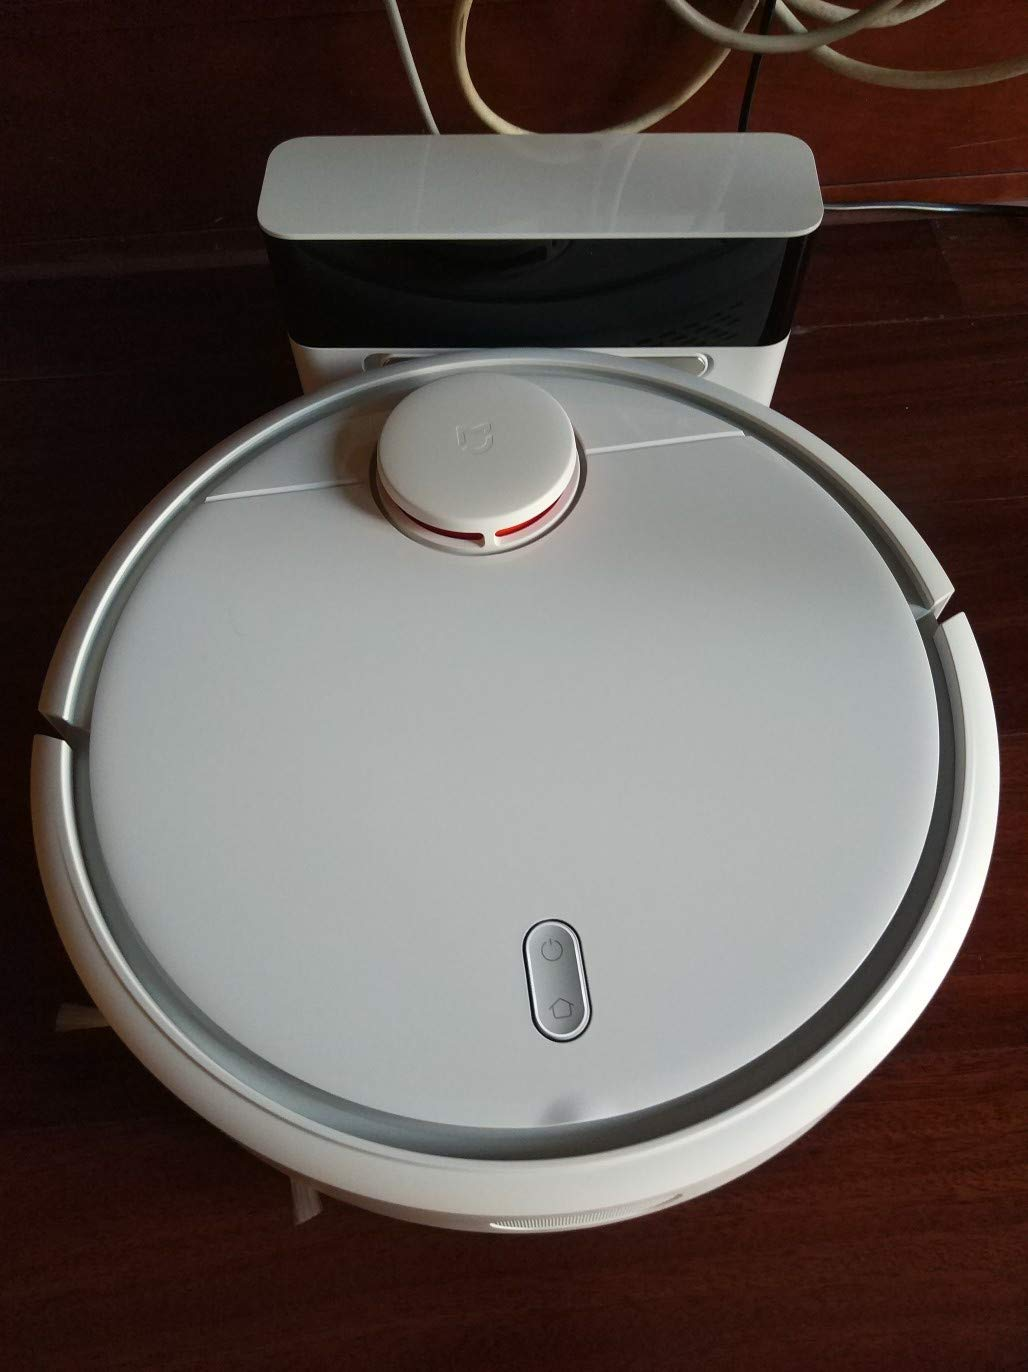 Amazon.com - DDgrin Xiaomi Mi Smart Automated Robot Vacuum Cleaner with Laser Distance Sensor Powerful Suction, Easy Dust Removal, Give You A Clean Home -